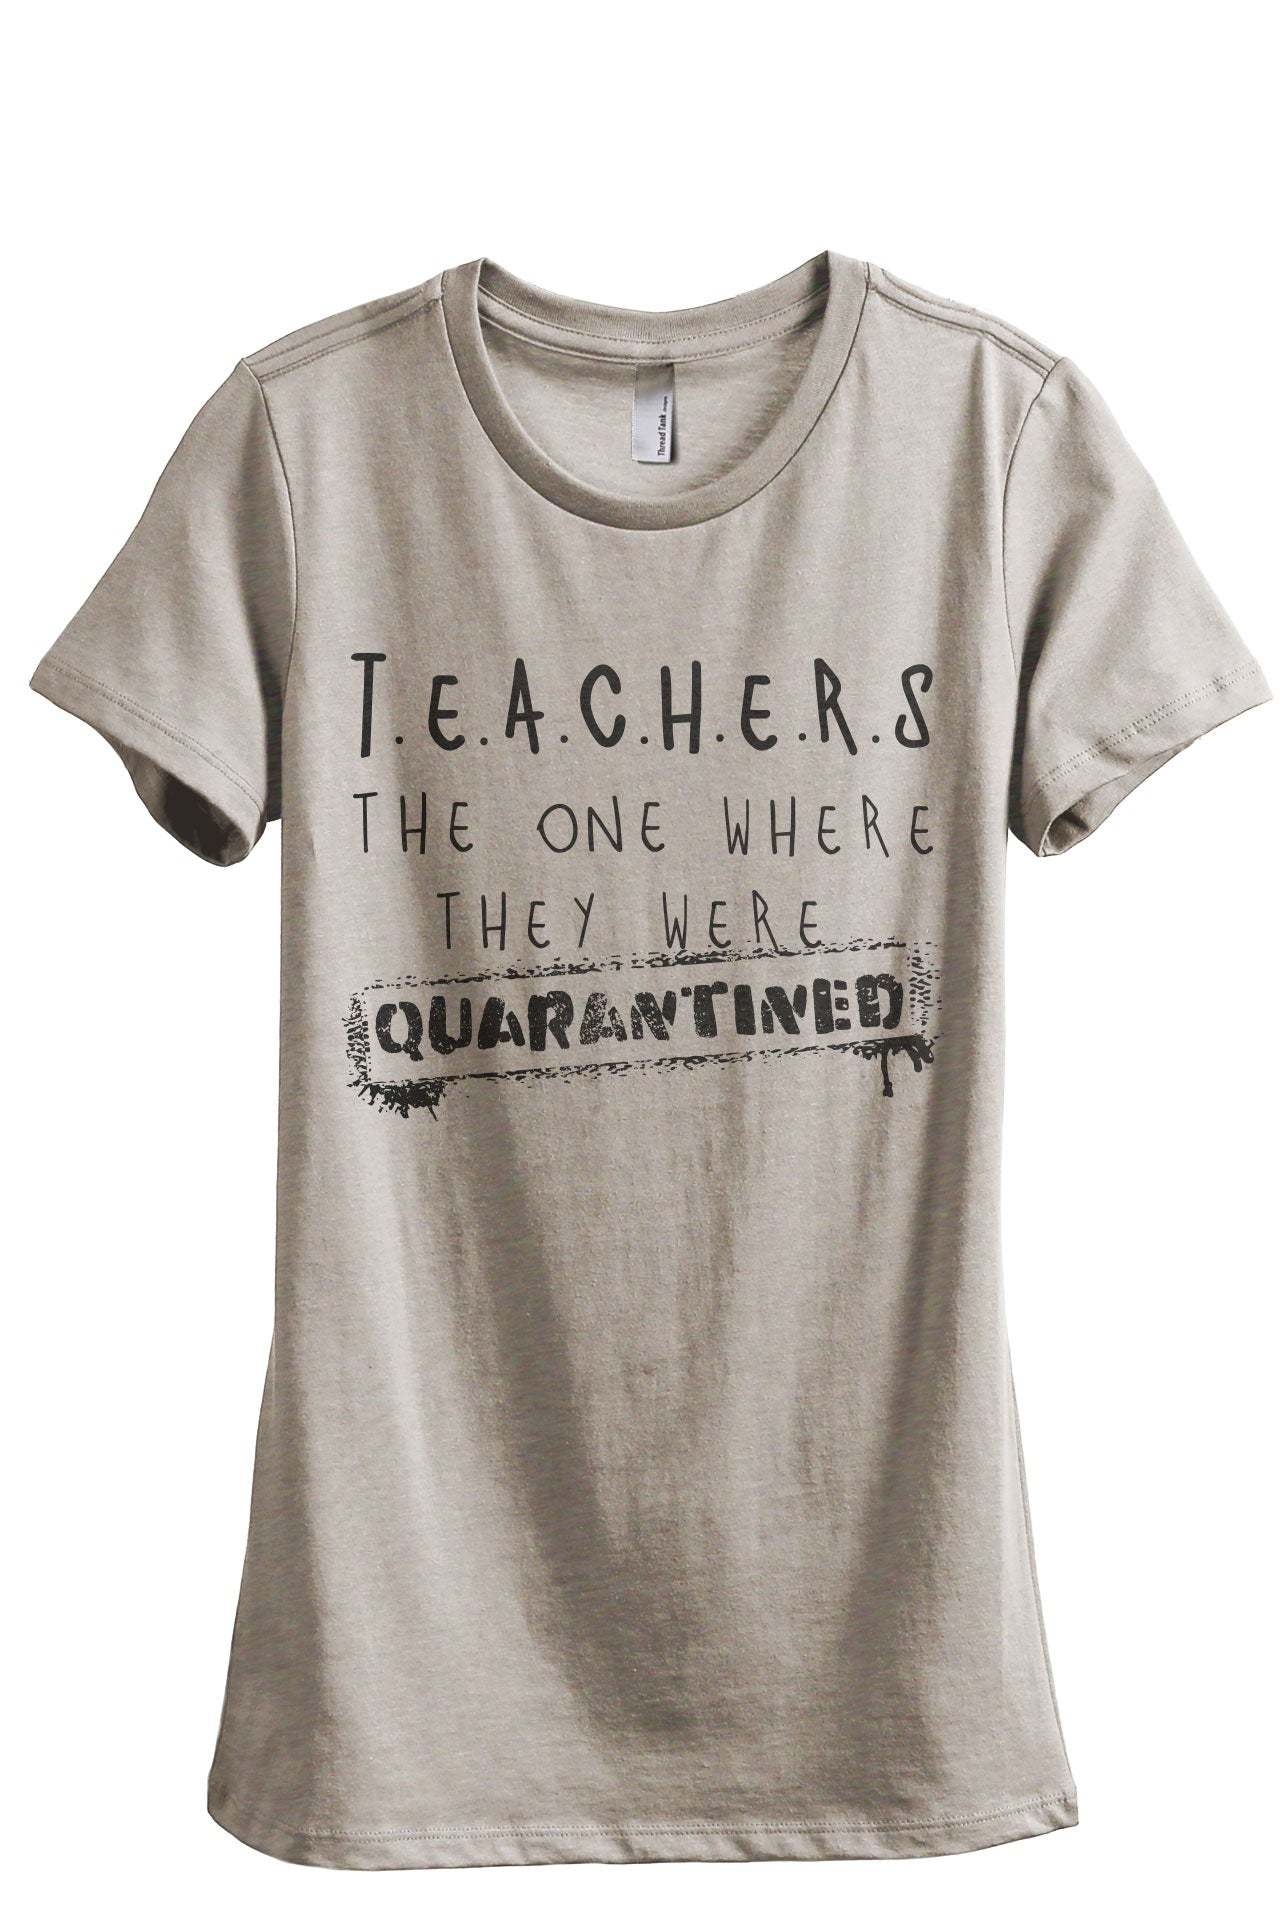 Teachers The One Where They Were Quarantined Women's Relaxed Crewneck T-Shirt Top Tee Heather Tan